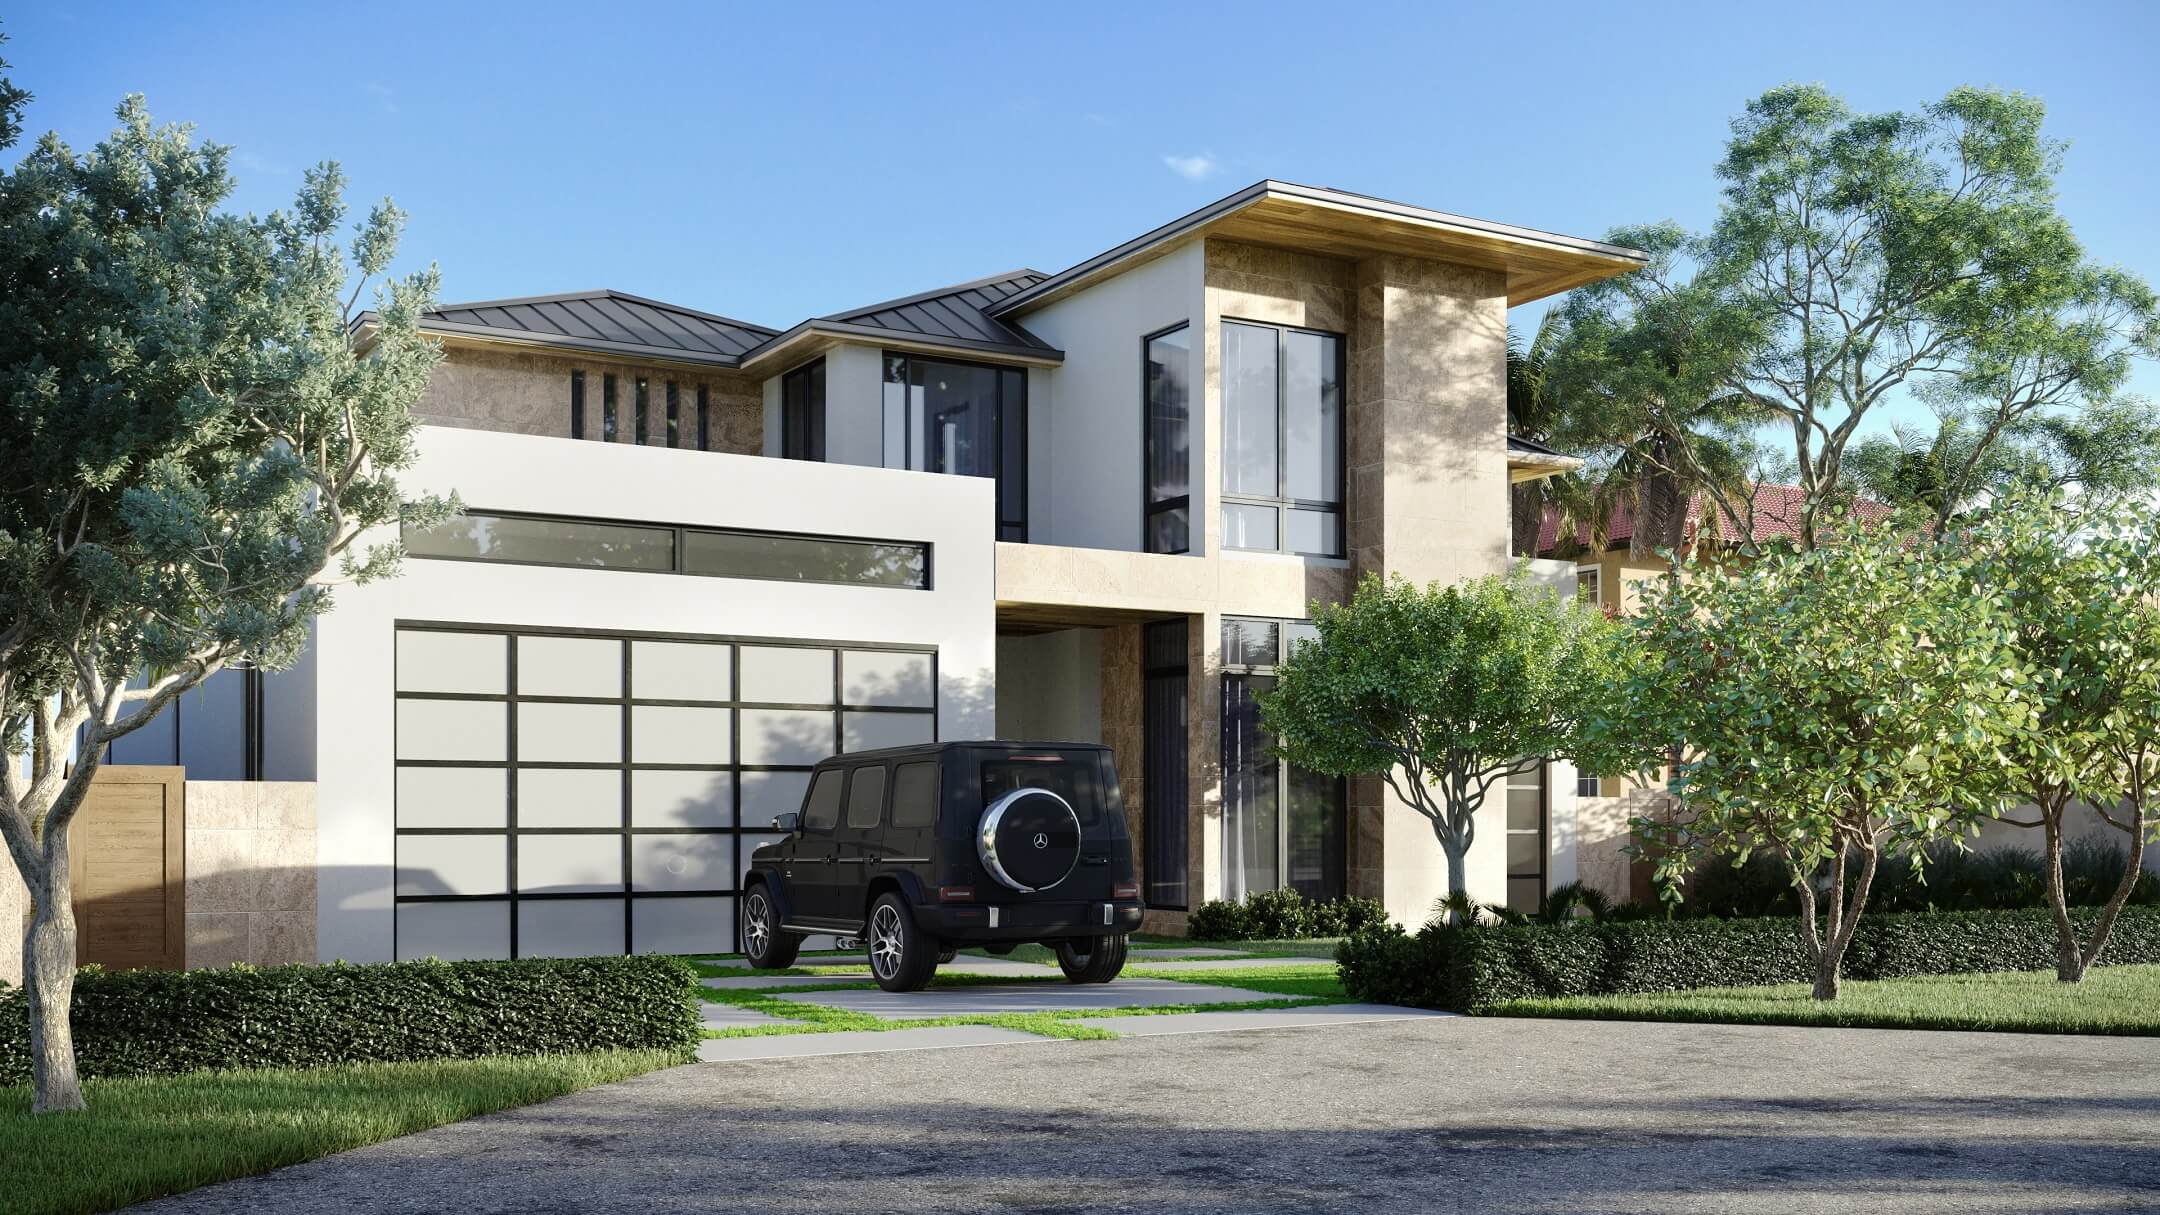 A 3D Render of a House Front